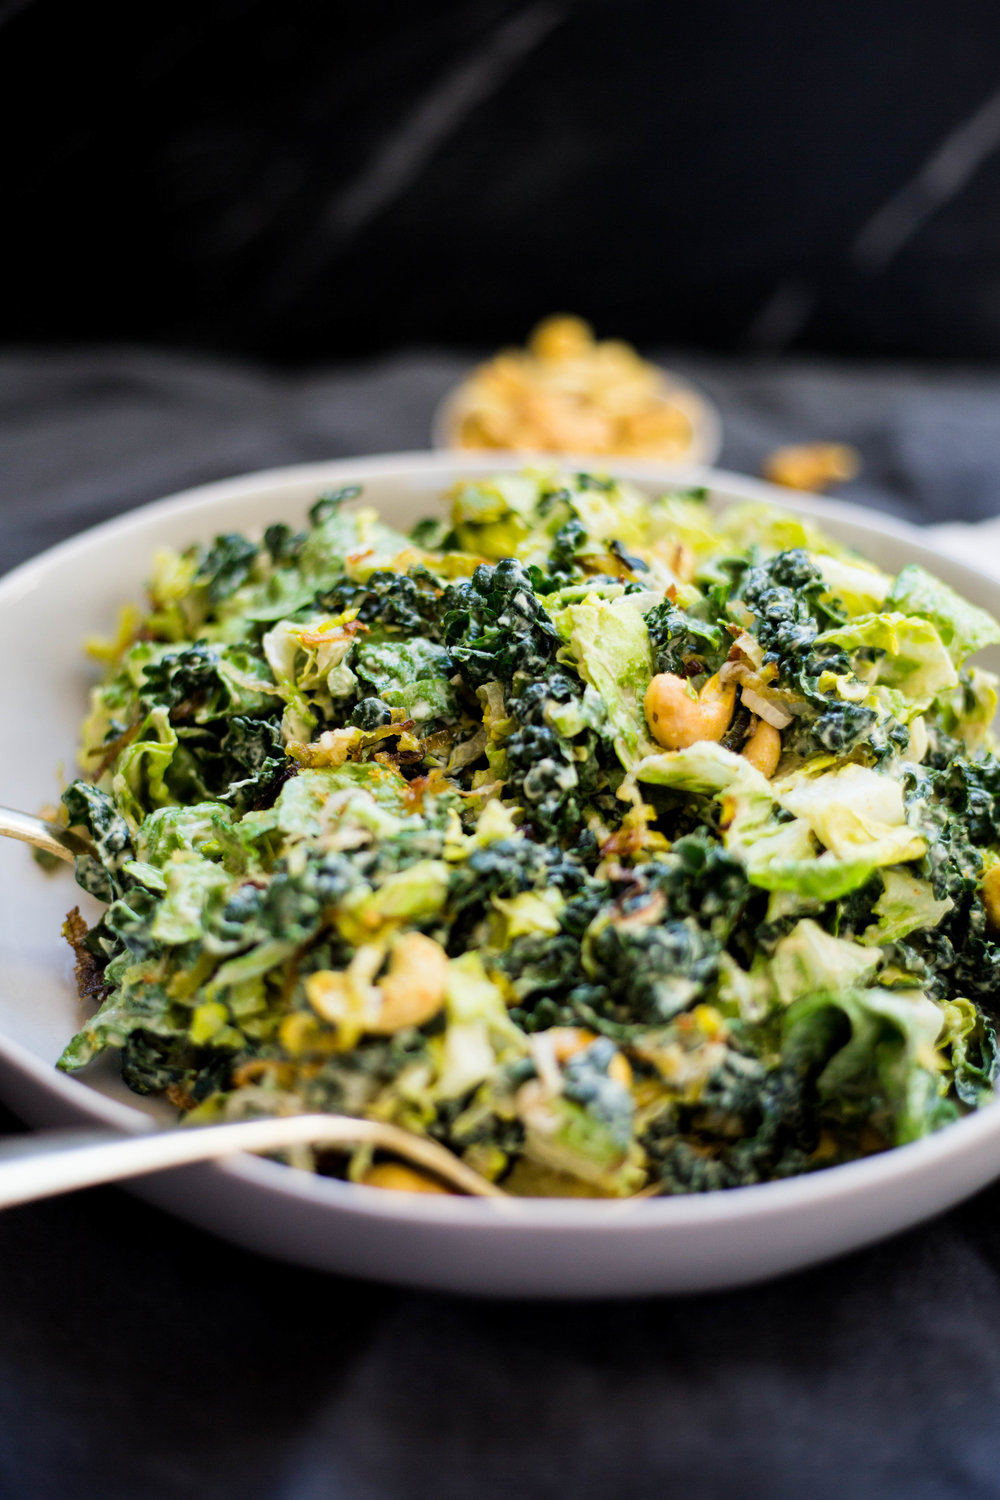 Creamy Kale Caesar Salad with Cashew Croutons and Crispy Leeks. Recipe and photos via PureKitchen Blog